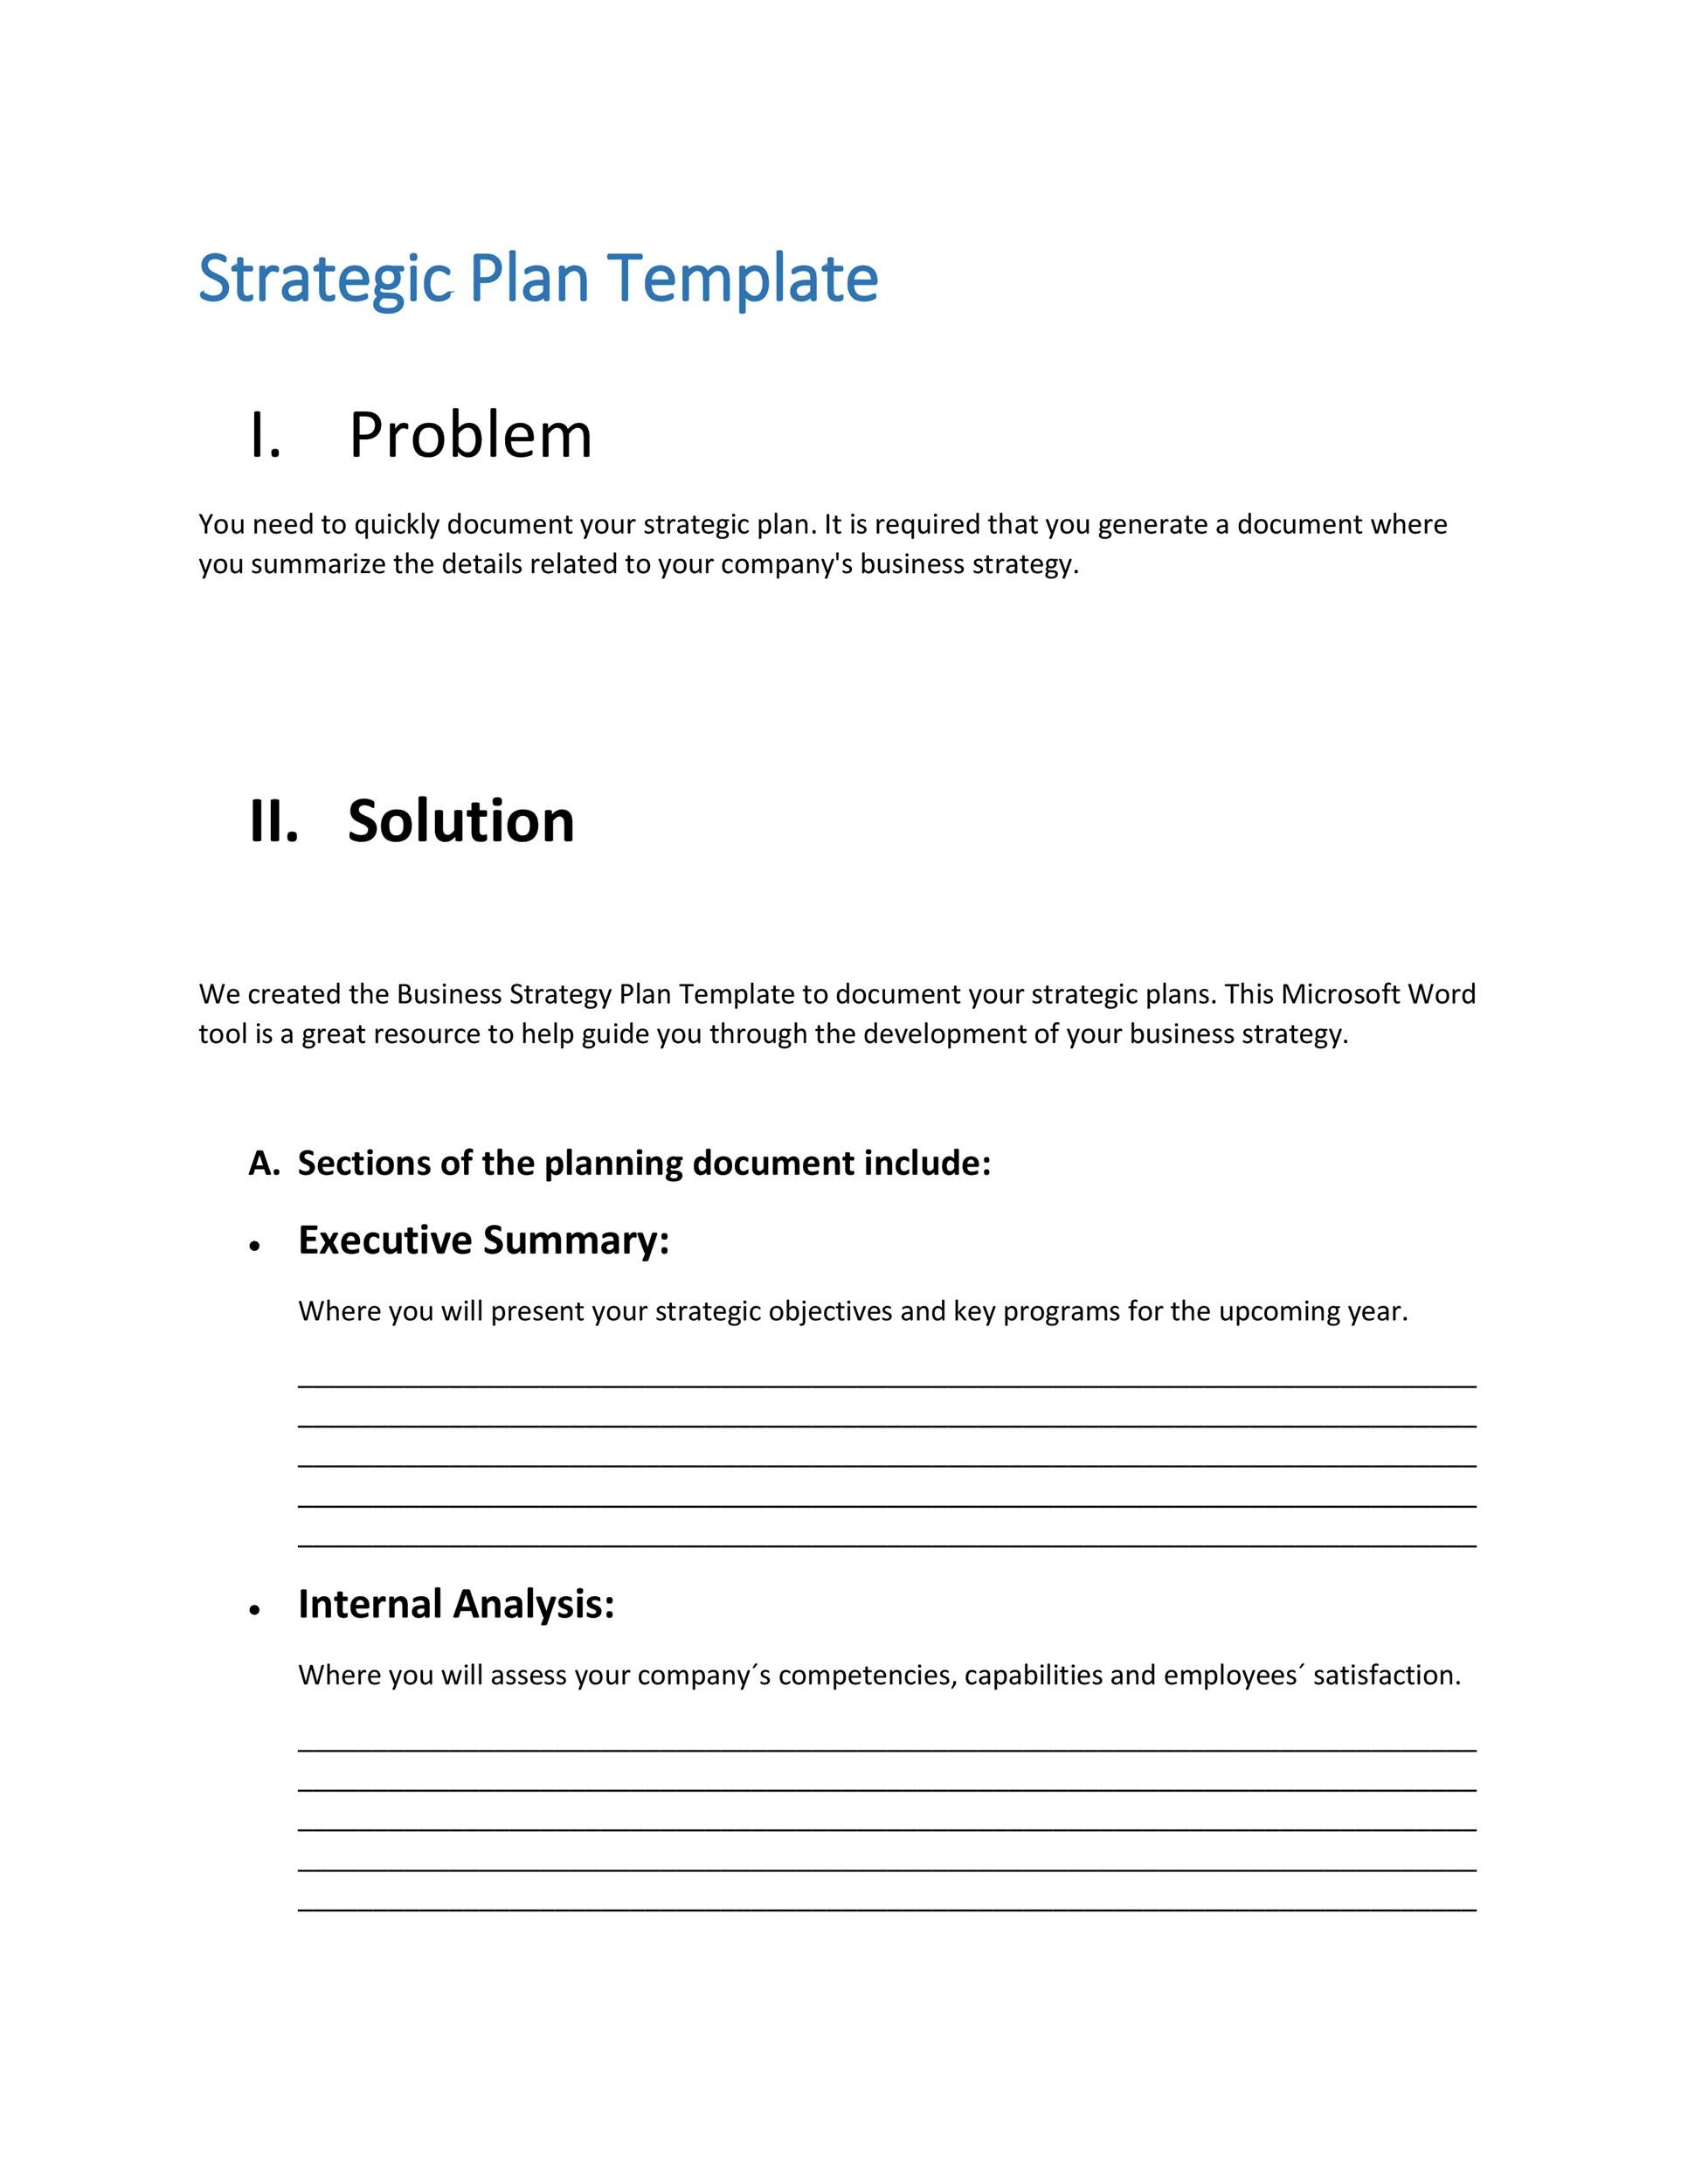 32 great strategic plan templates to grow your business free strategic plan template 09 accmission Choice Image